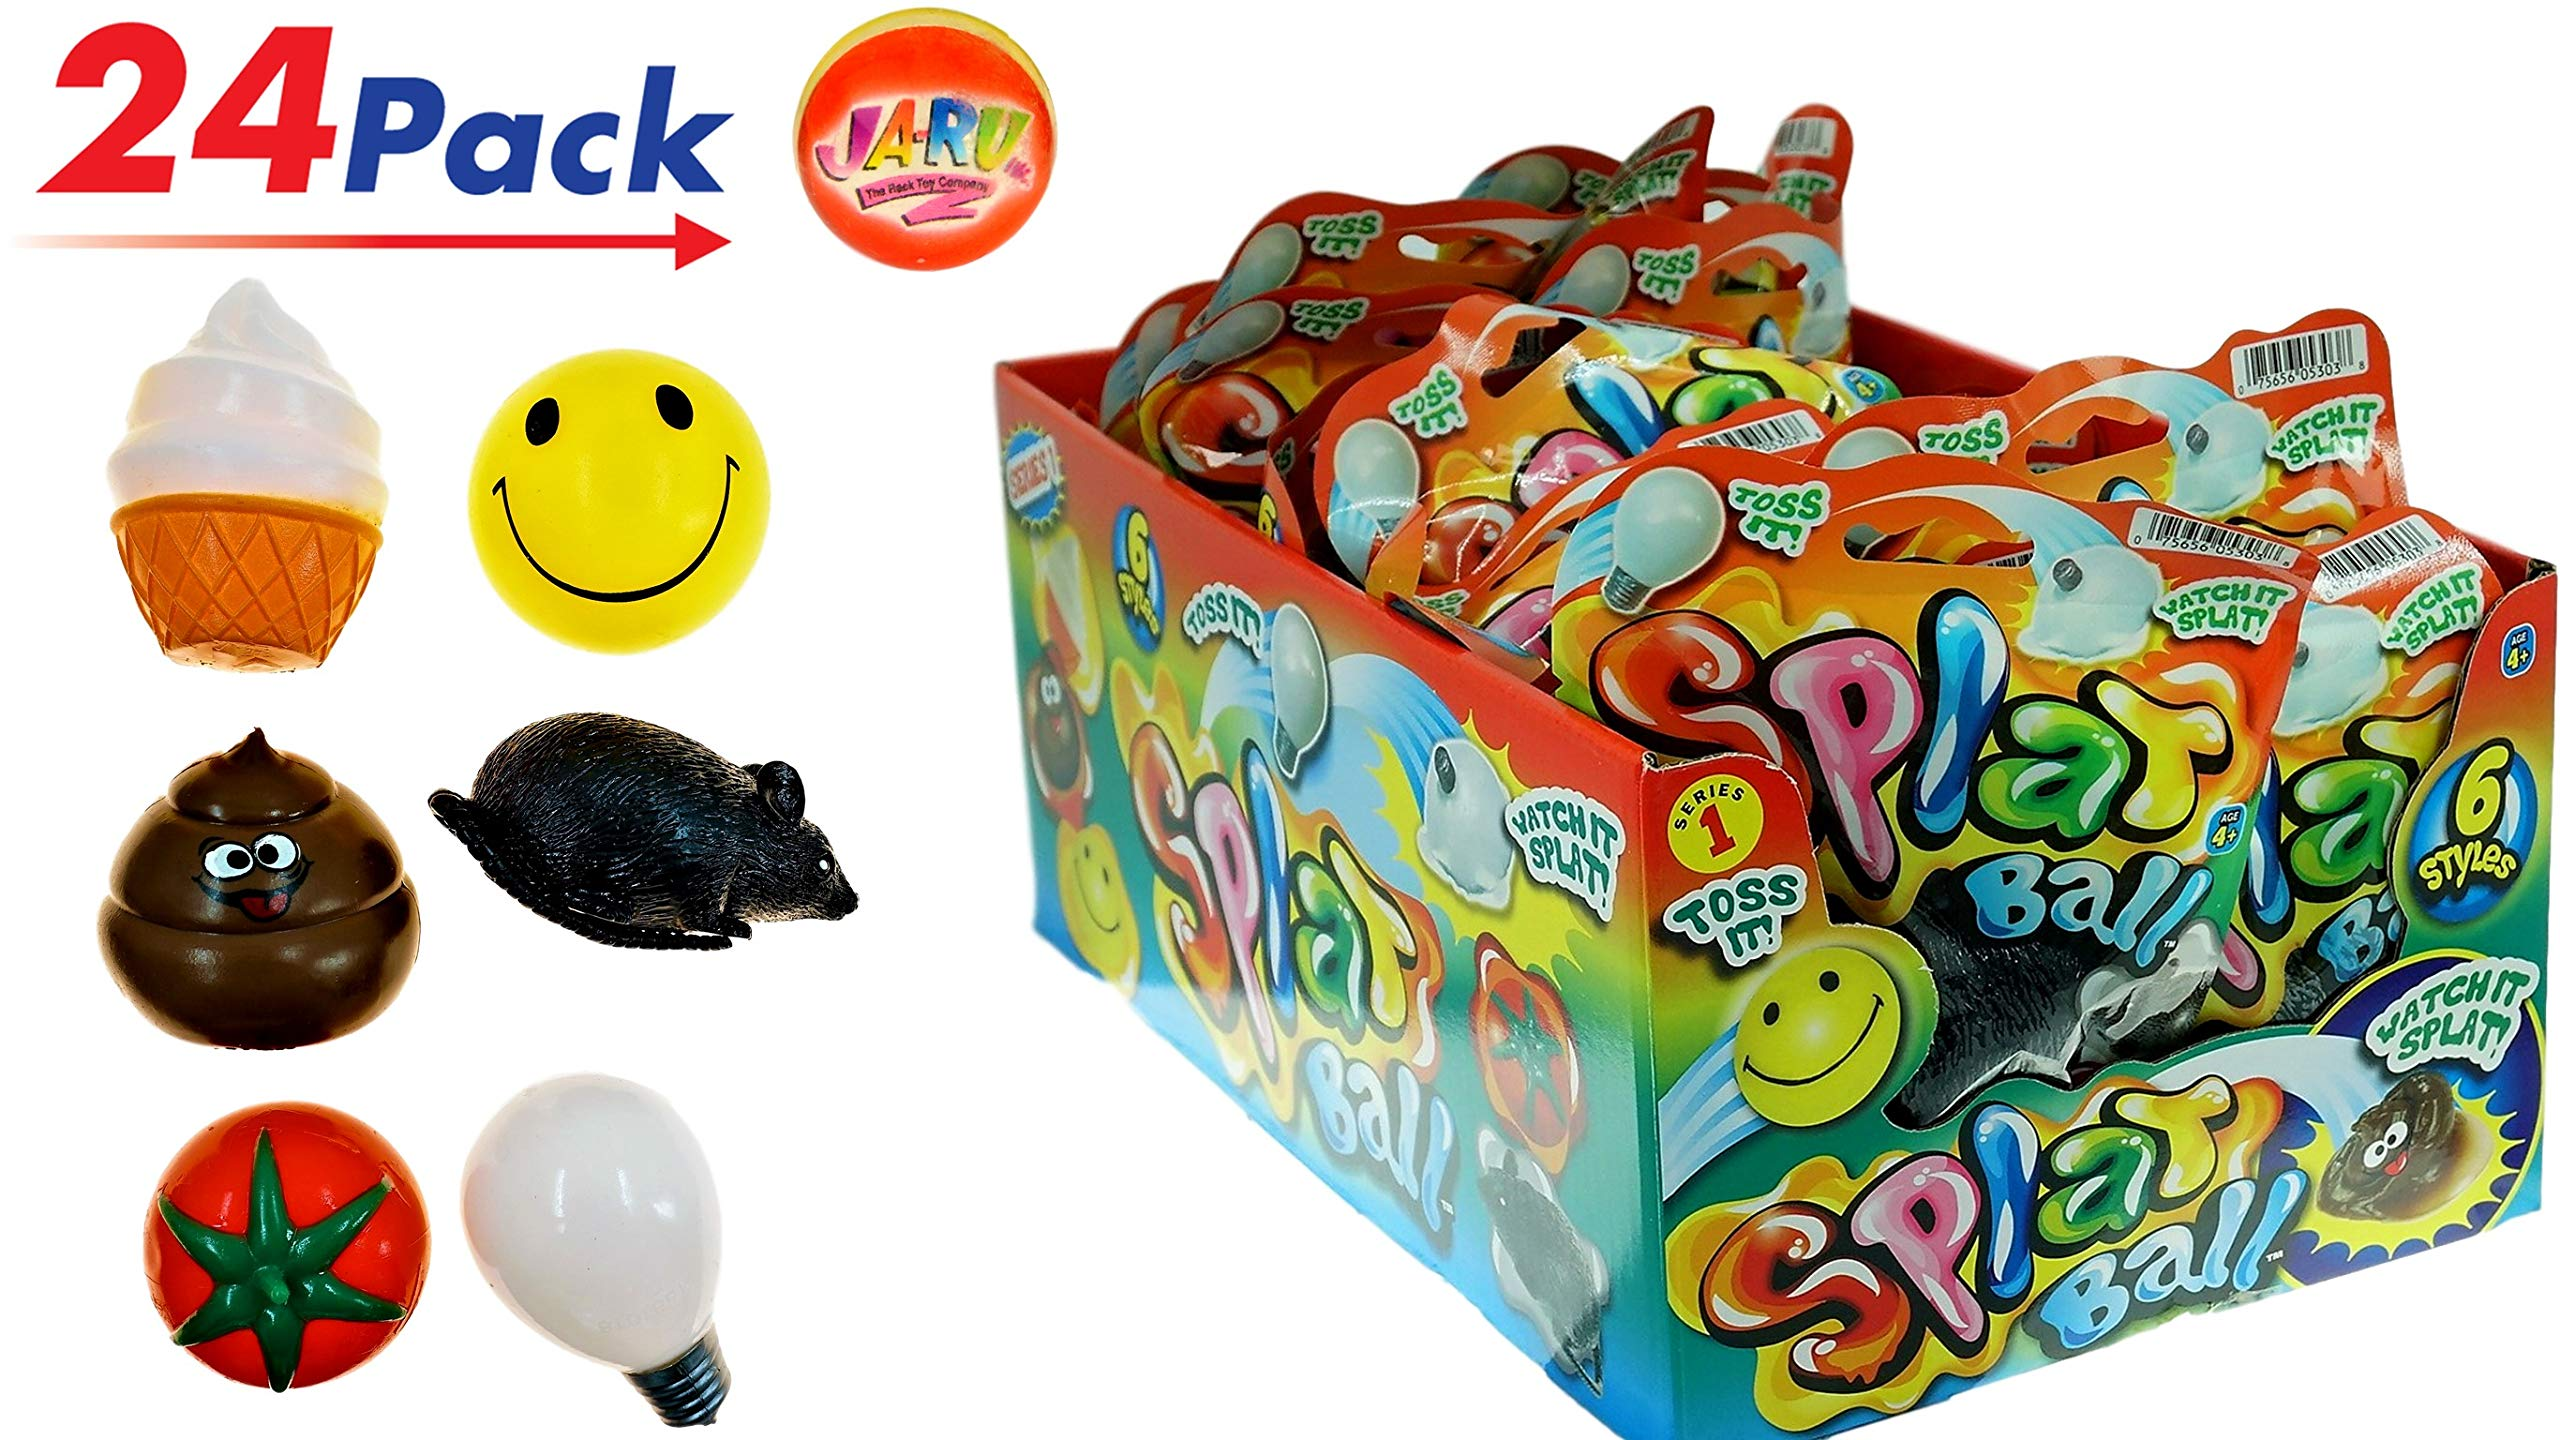 JA-RU Splat Ball Sticky & Stretchy (Pack of 24 with 1 Display Box) and 1 Bouncy Ball Rat, Poo, Happy Face, Bulb, Tomato, Ice Cream. N5303-24p